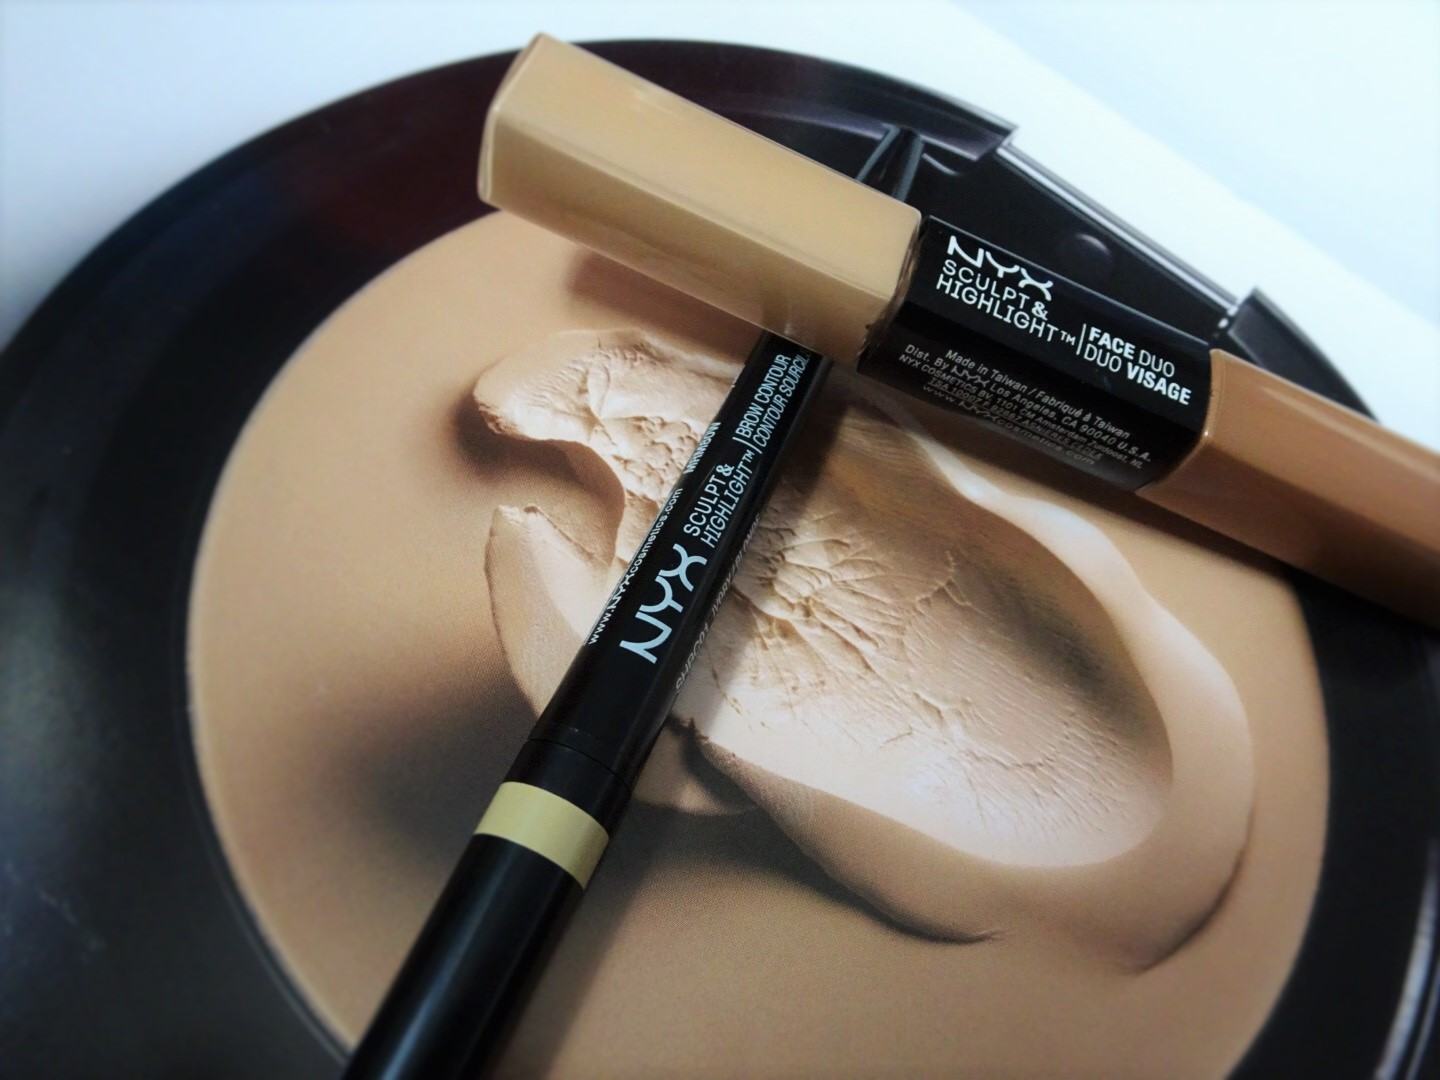 NYX Sculpt and Highlight